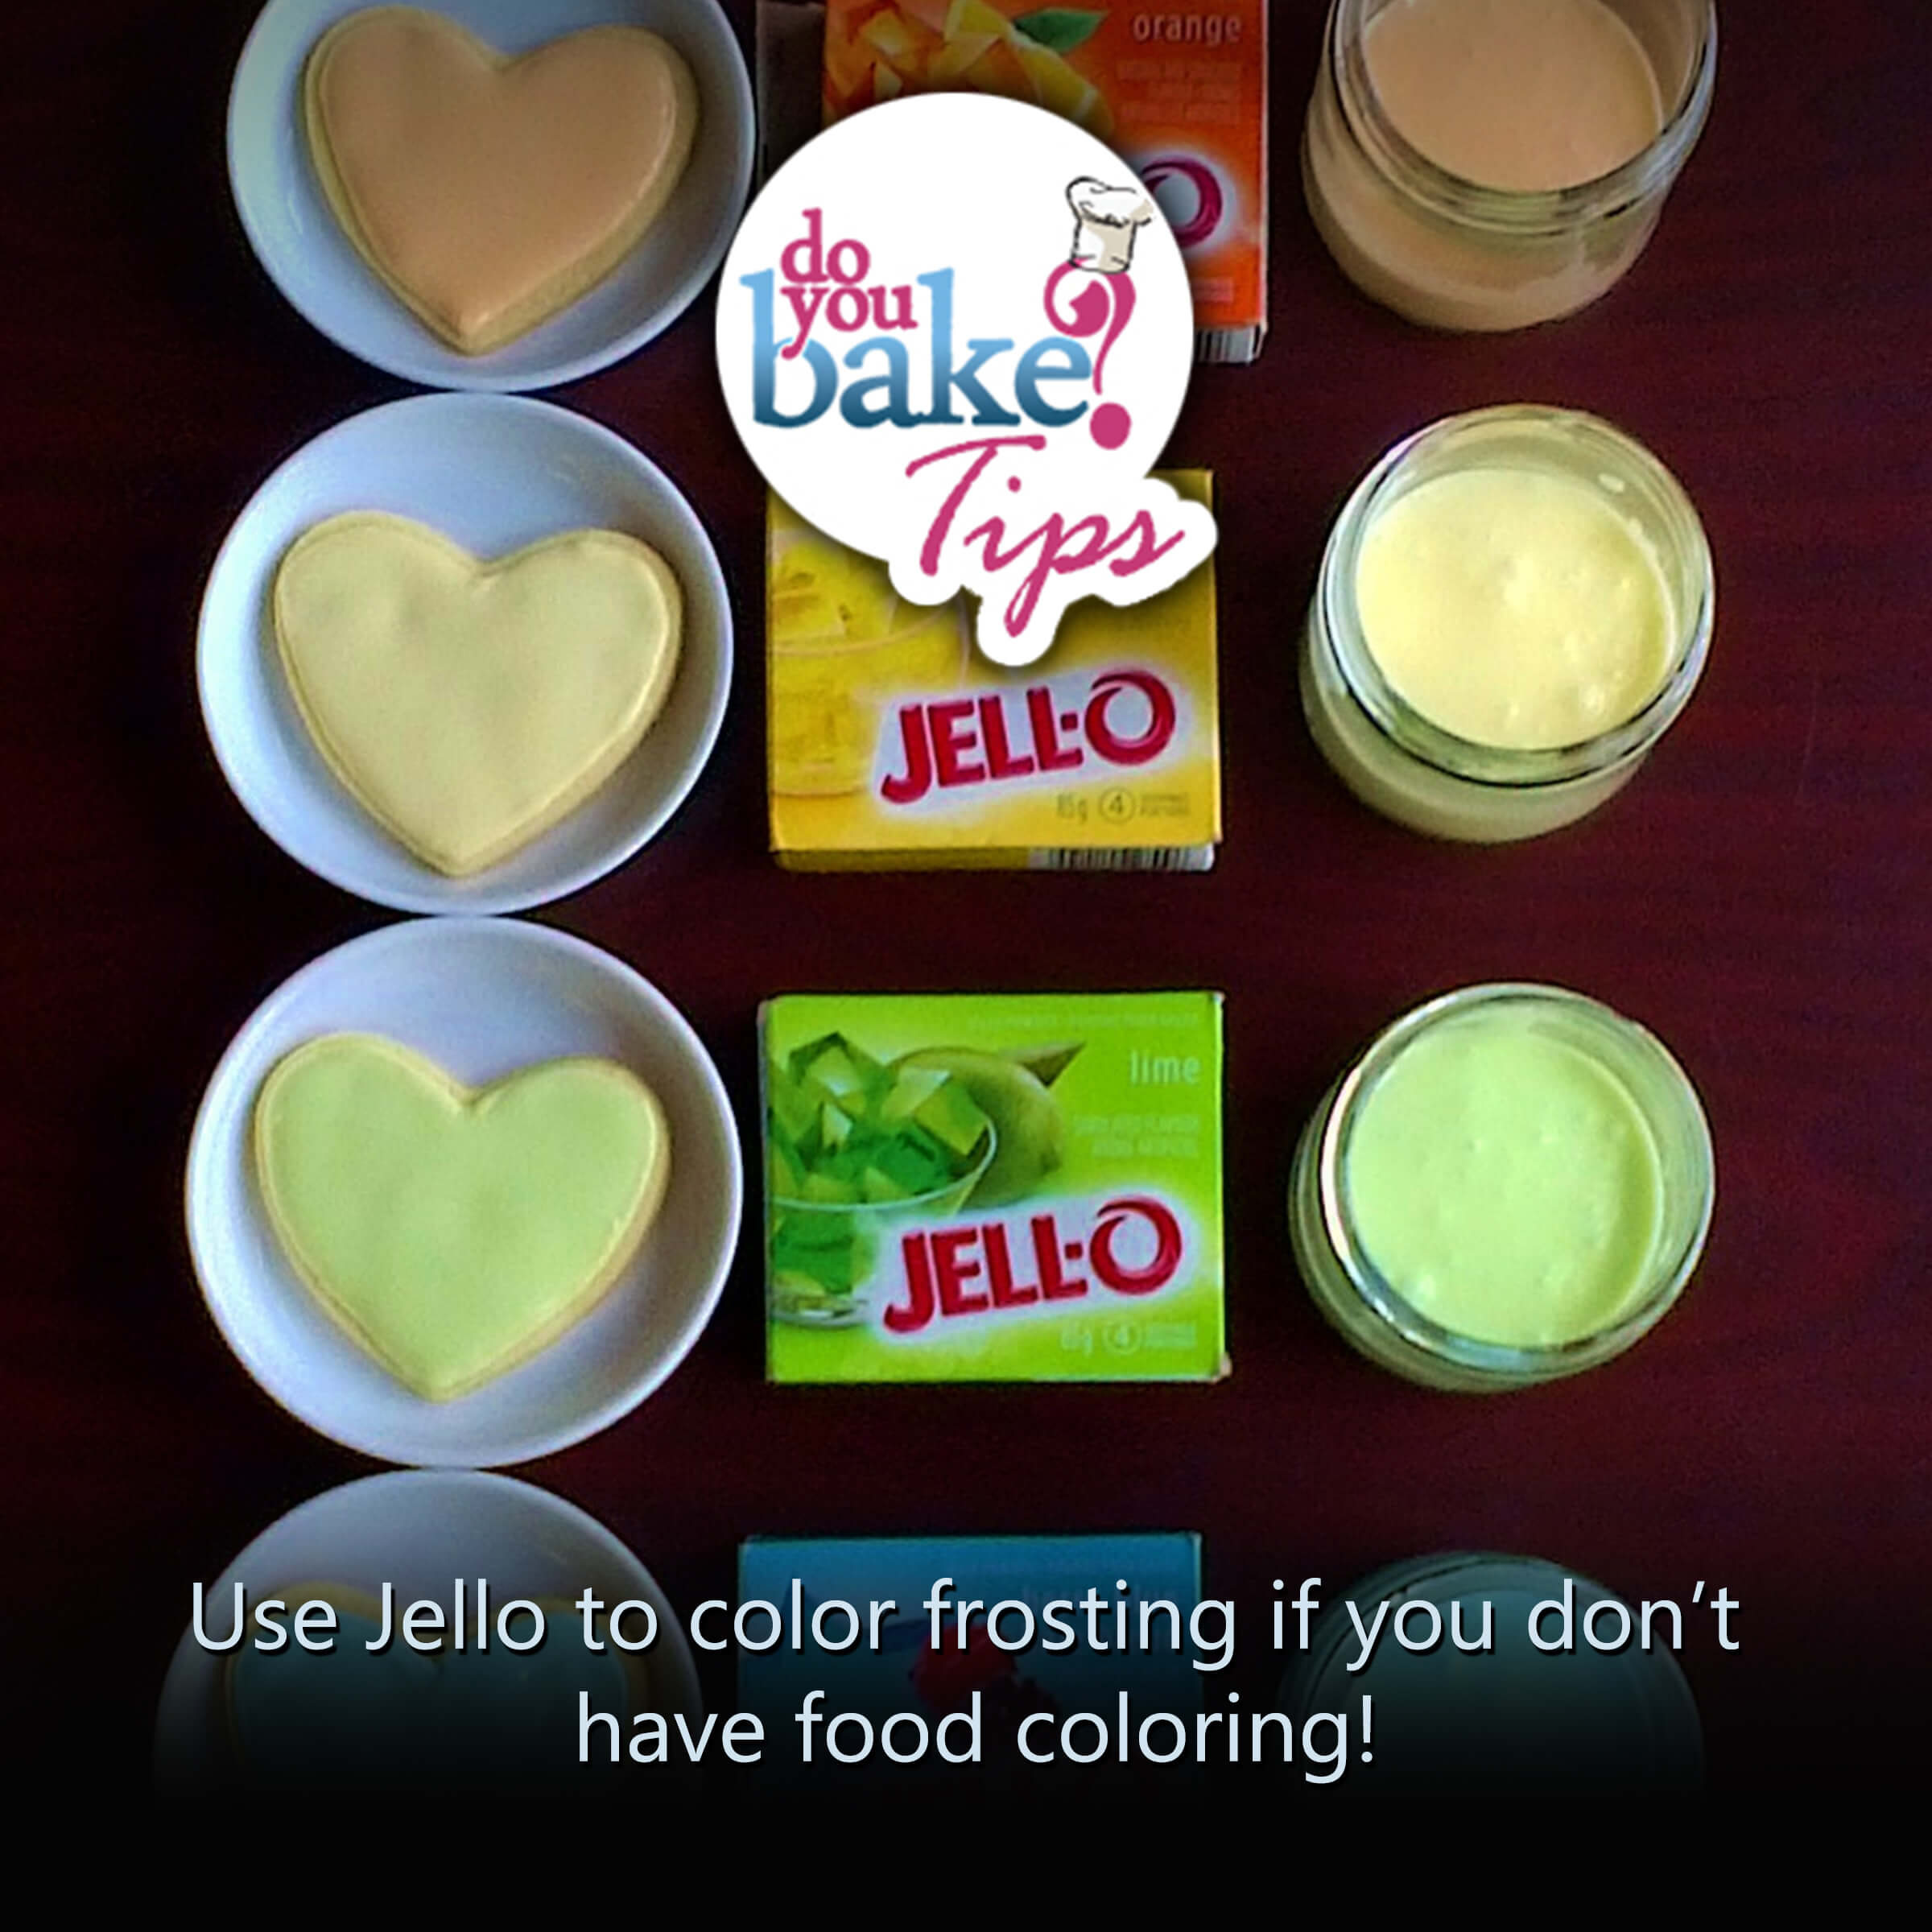 Jello to color frosting! – Do You Bake